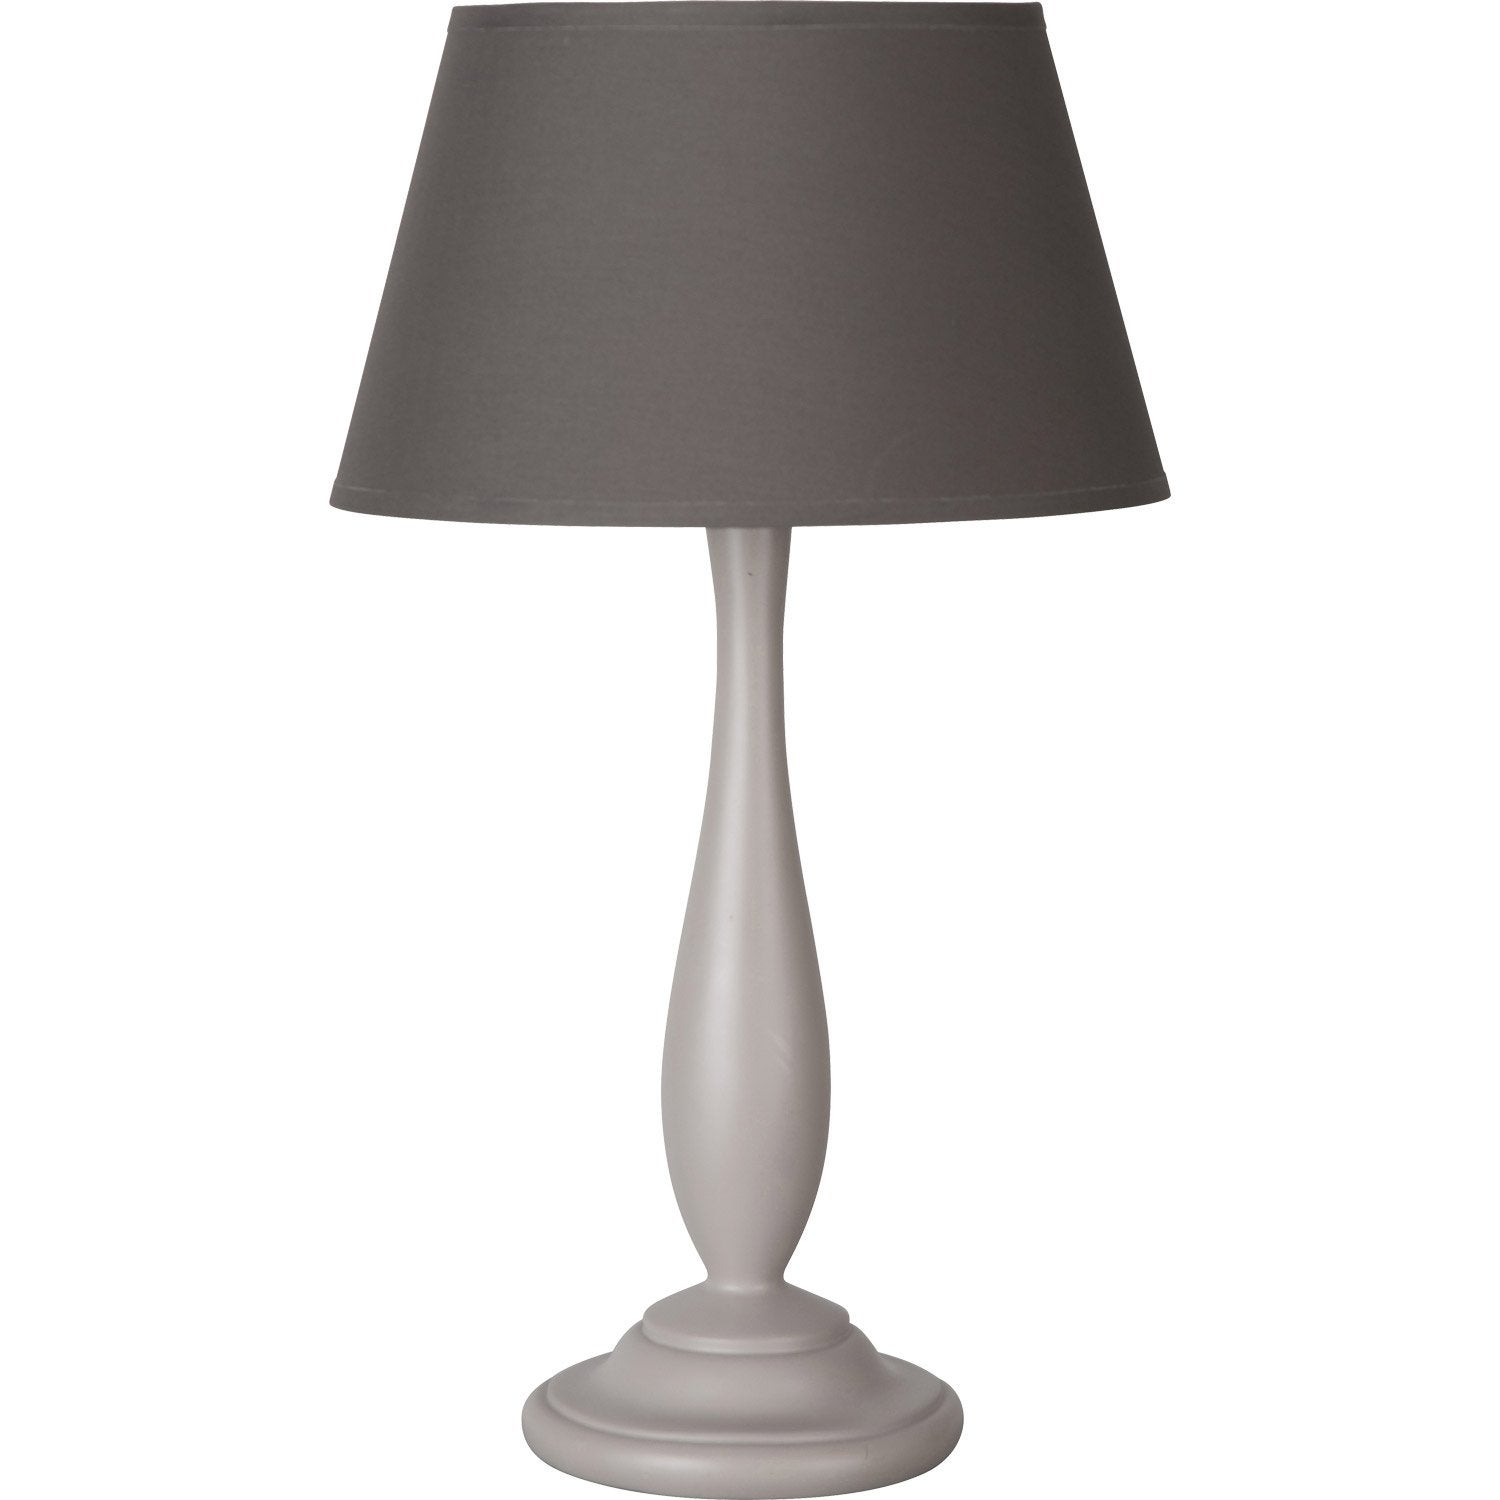 lampe lea corep coton taupe 60 w leroy merlin. Black Bedroom Furniture Sets. Home Design Ideas